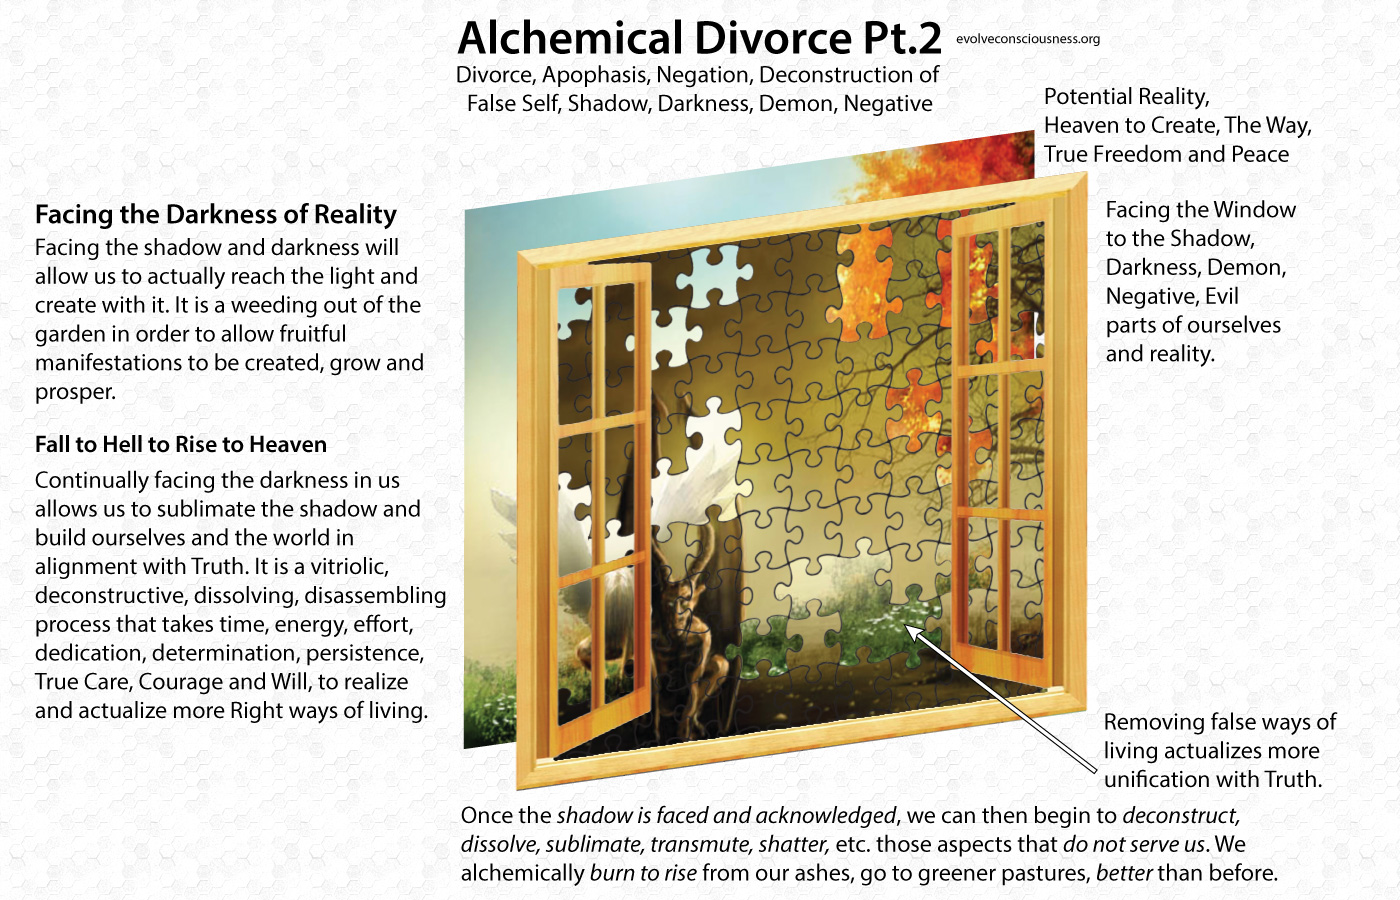 Alchemical-Divorce-Pt.2